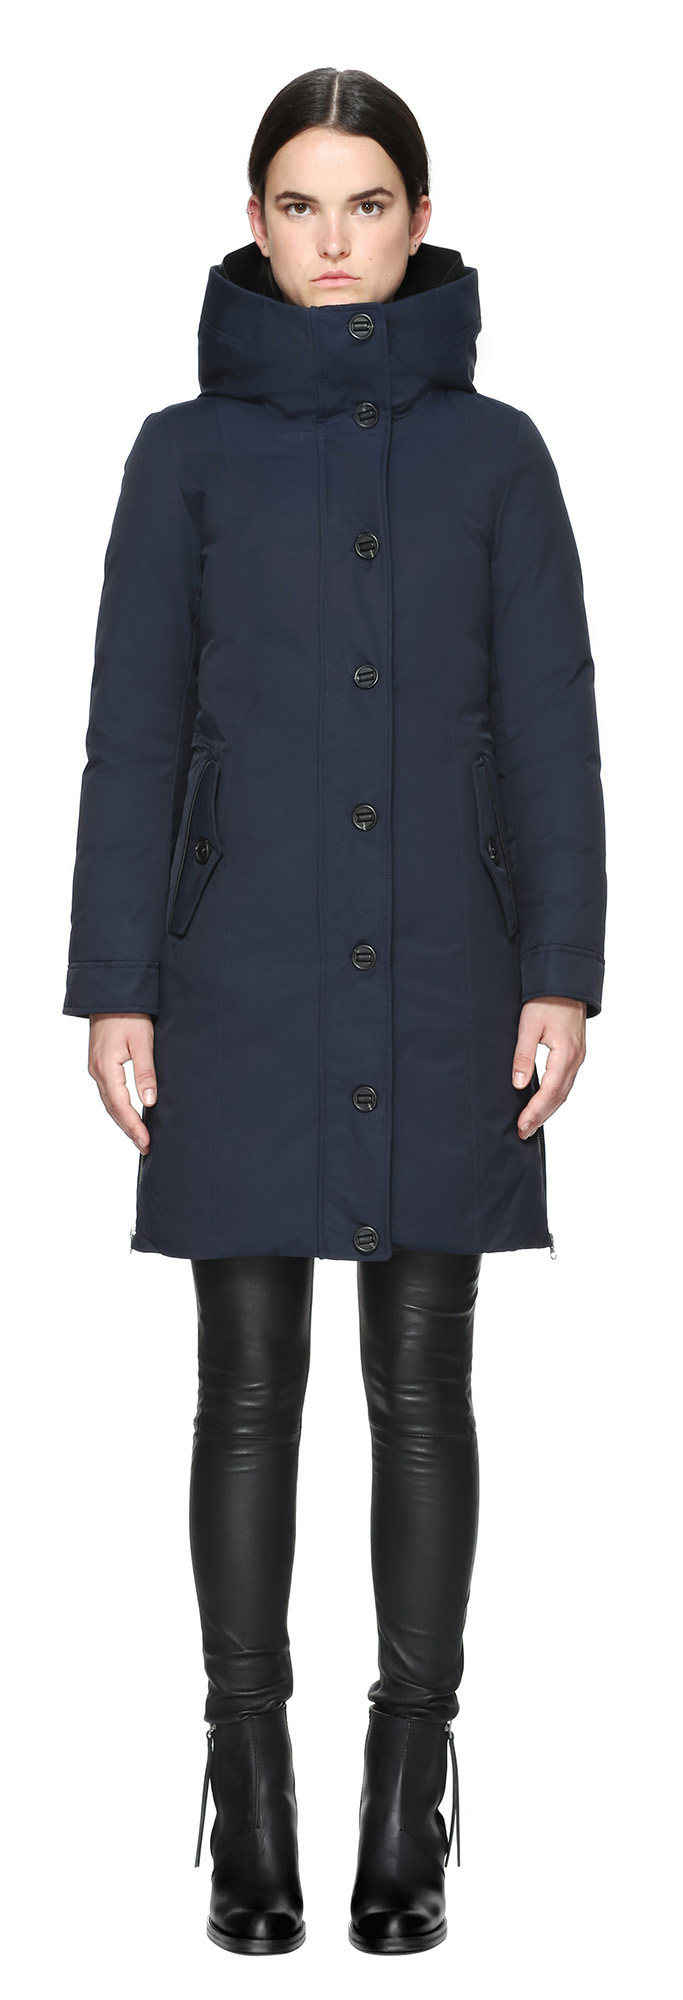 Mackage Nimah Knee Length Parka Style Winter Down Coat In Navy in ...